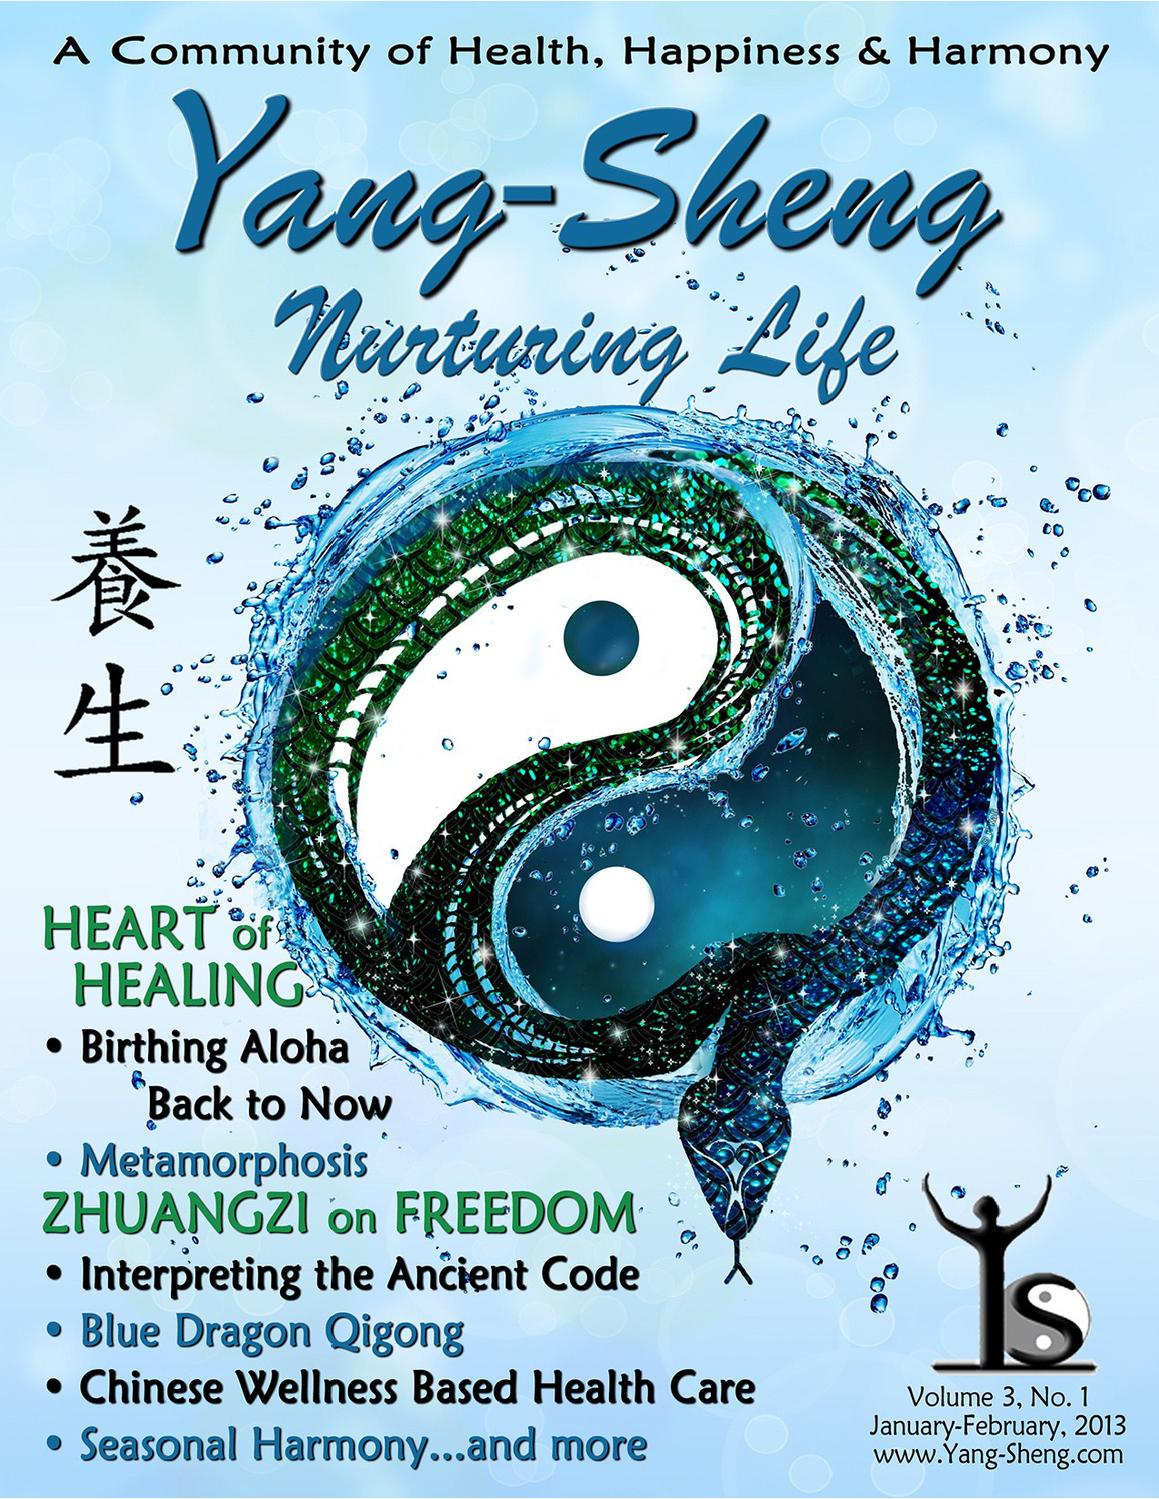 Yang-Sheng January-February 2013 by Dao of Well Being - issuu